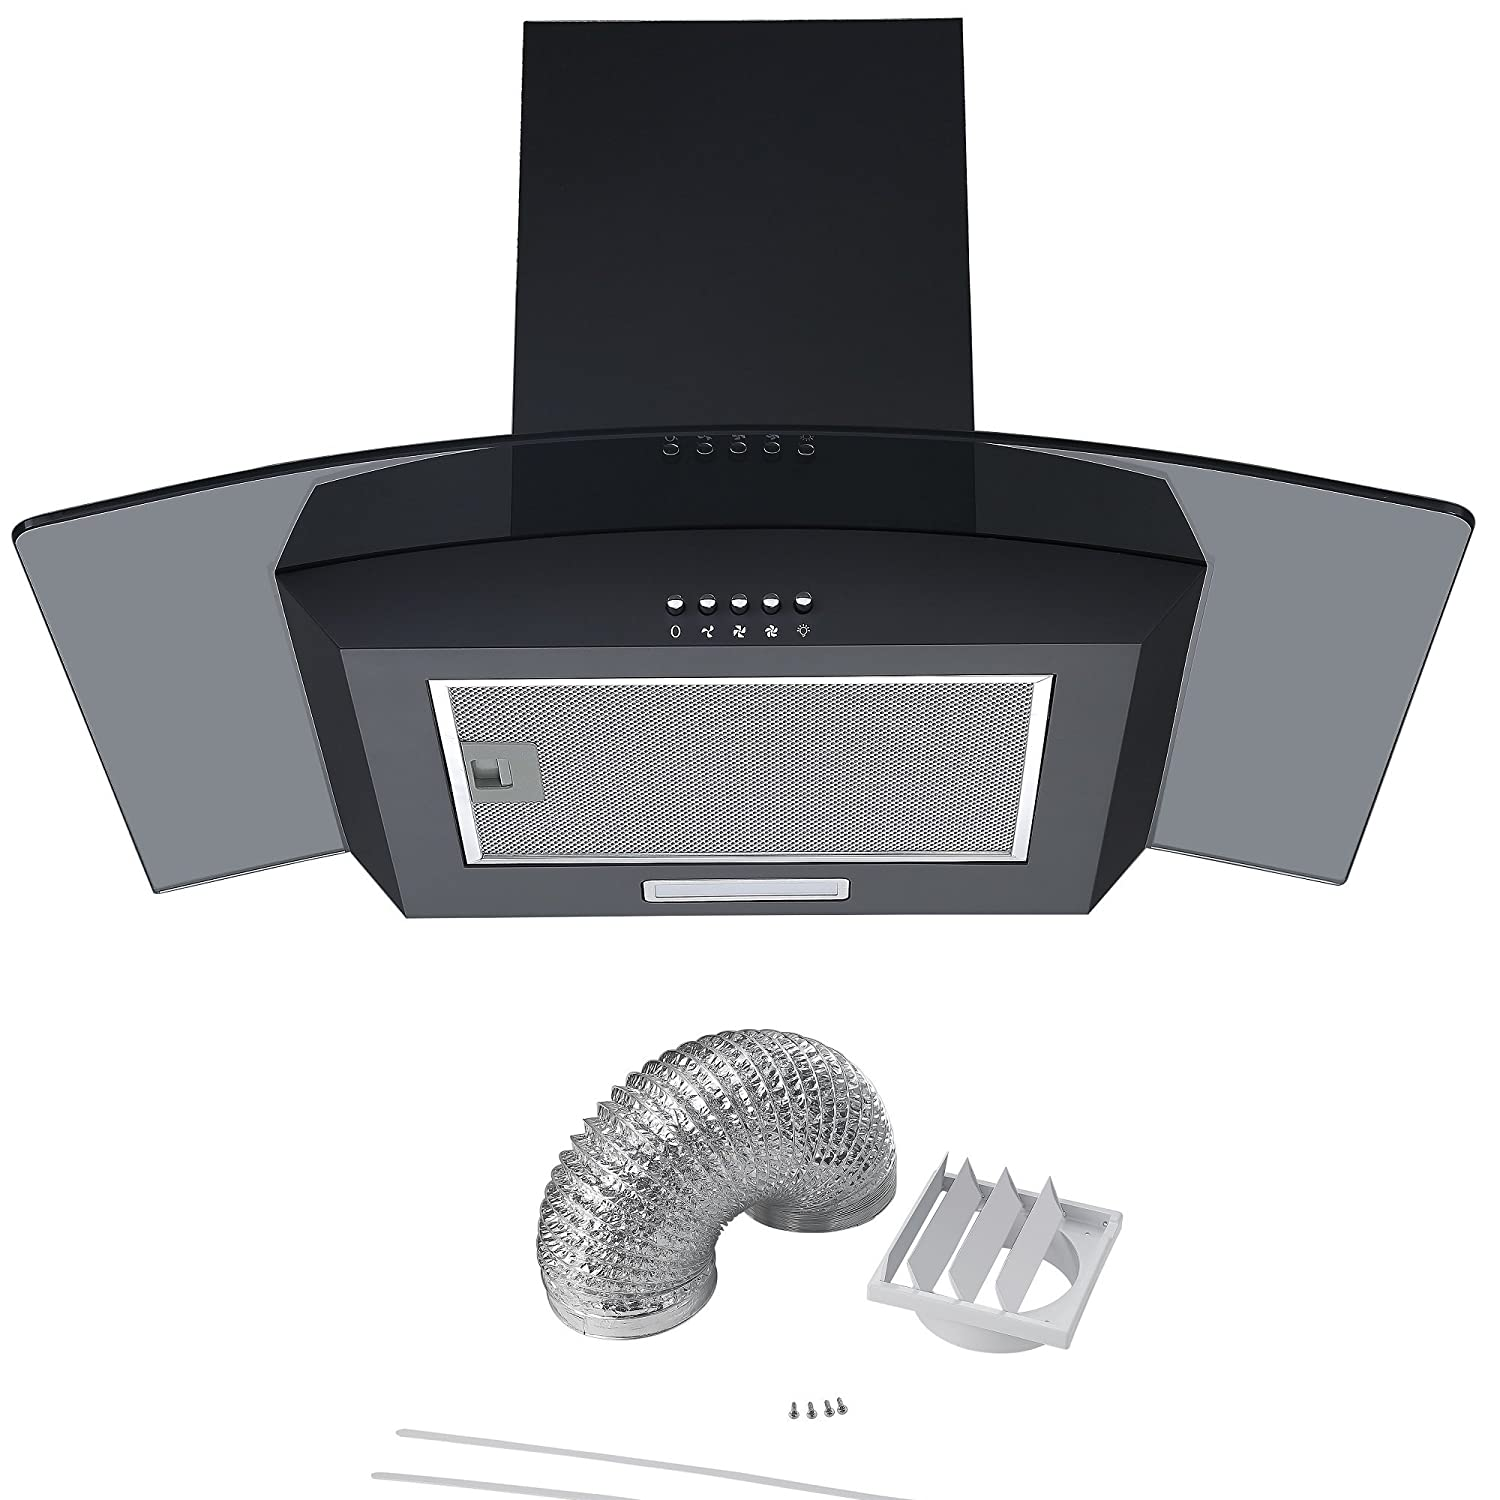 Black Cookology CGL700BK 70cm Smoked Curved Glass Chimney Cooker Hood & Duct CGL700BK DK1M150